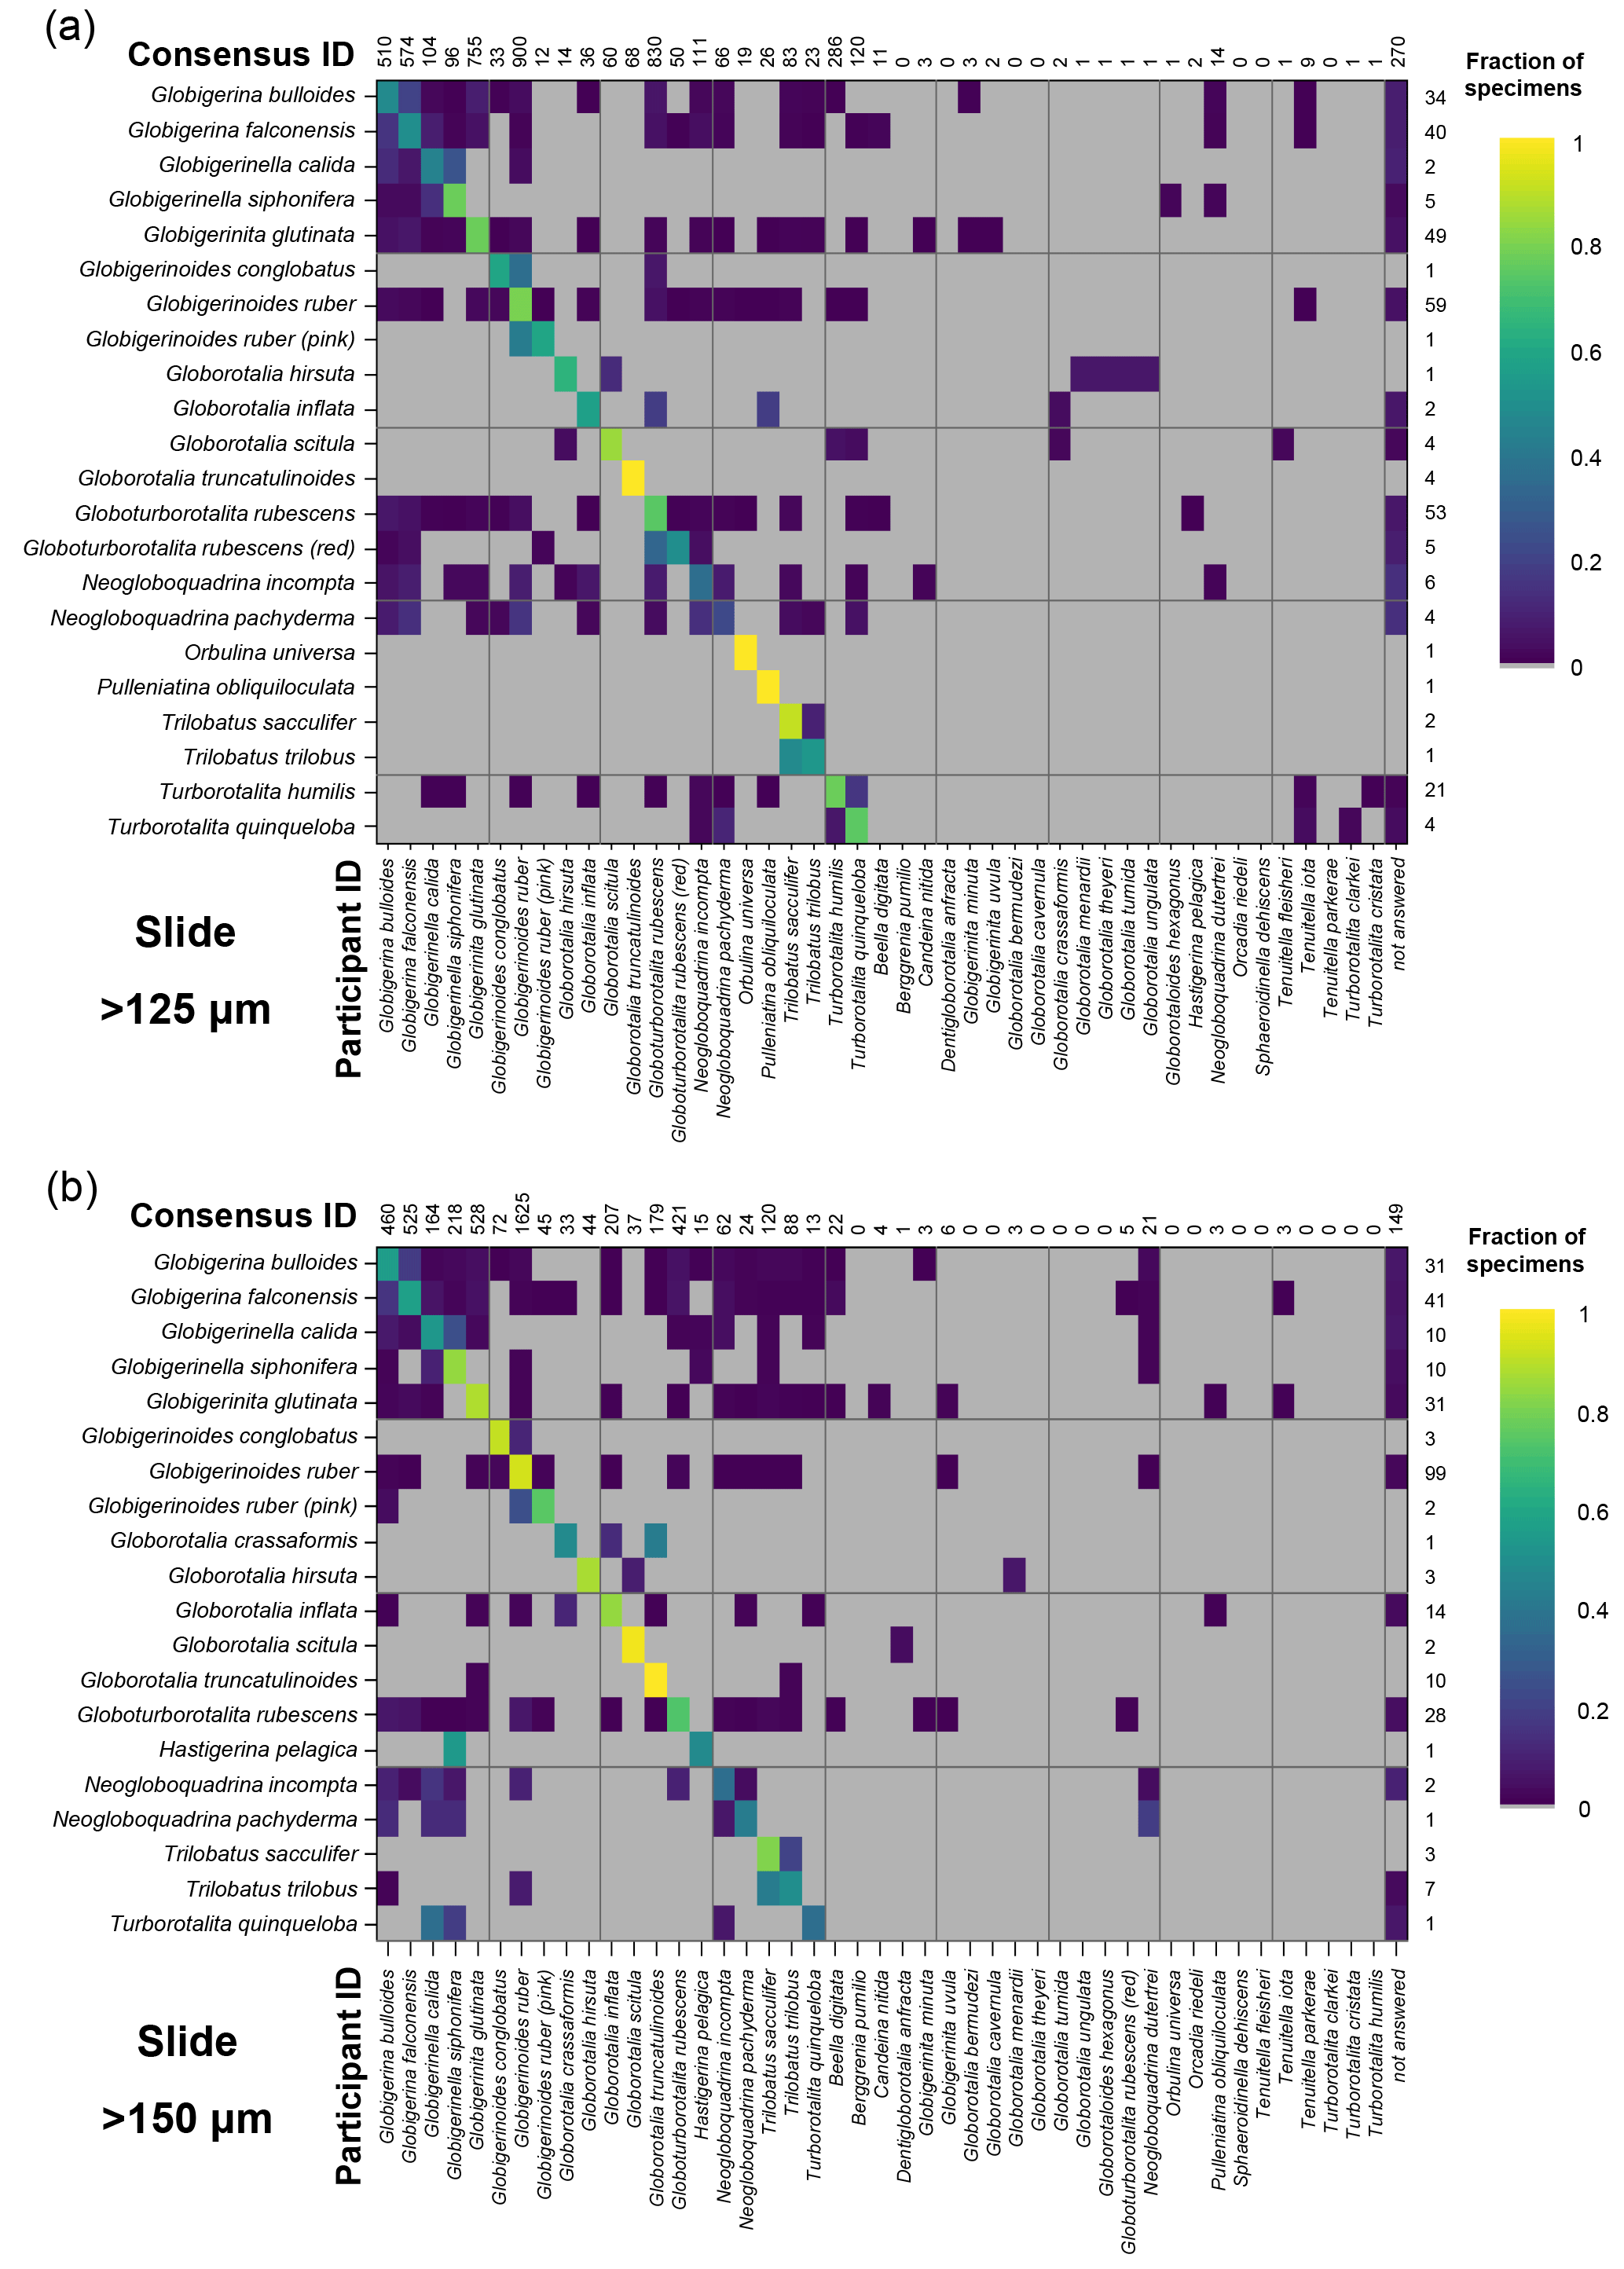 JM - Reproducibility of species recognition in modern